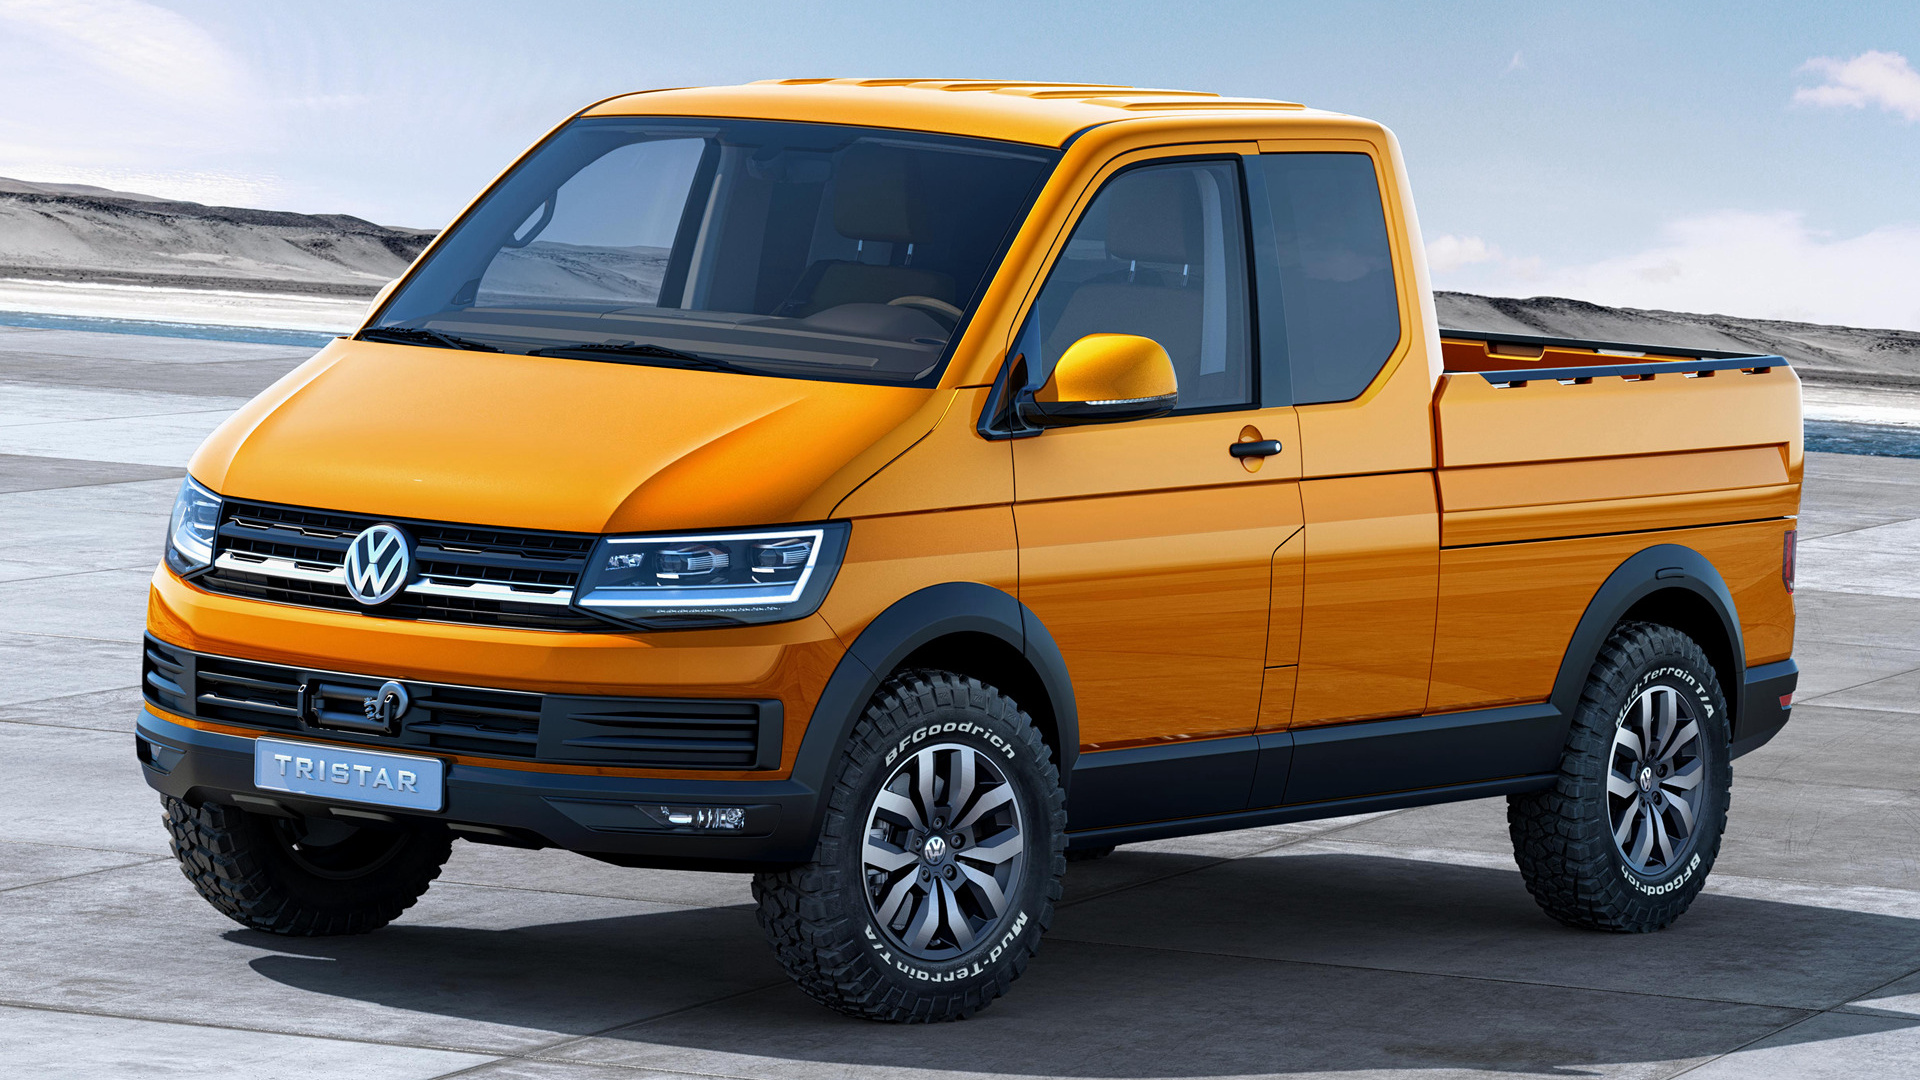 2014 Volkswagen Tristar Concept Wallpapers And Hd Images